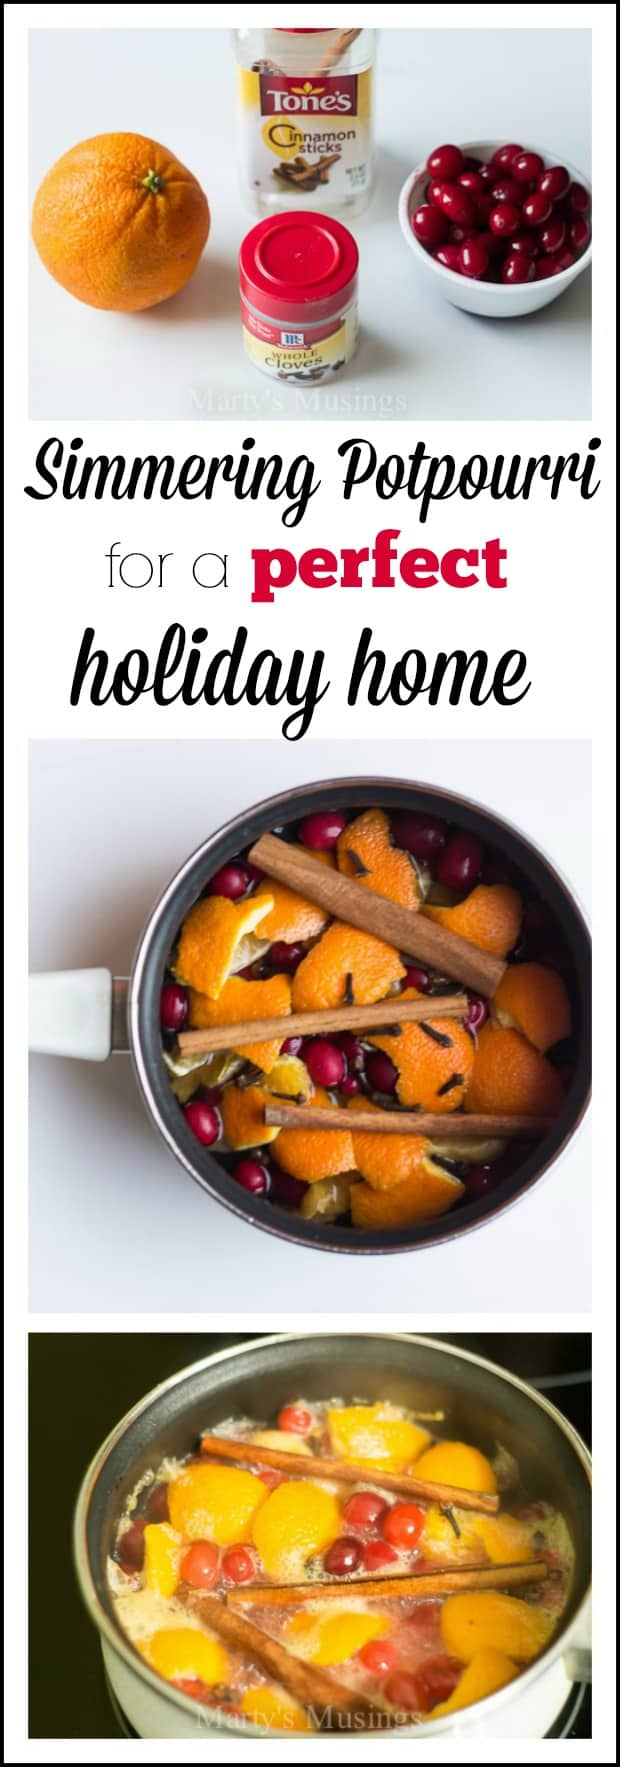 This homemade potpourri is easy to make, smells amazing and adds a festive scent to holiday parties and celebrations. Perfect for any occasion! #christmas #entertaining #christmasparty #holidays #diy #holidayhome #martysmusings